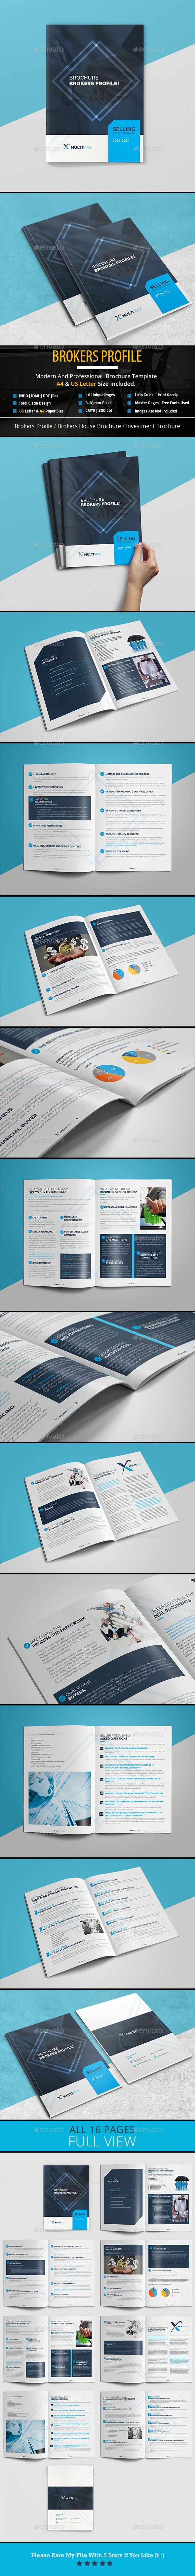 Free Profile Templates Brokers Profile Brochure  Brochures Print Templates And Brochure .